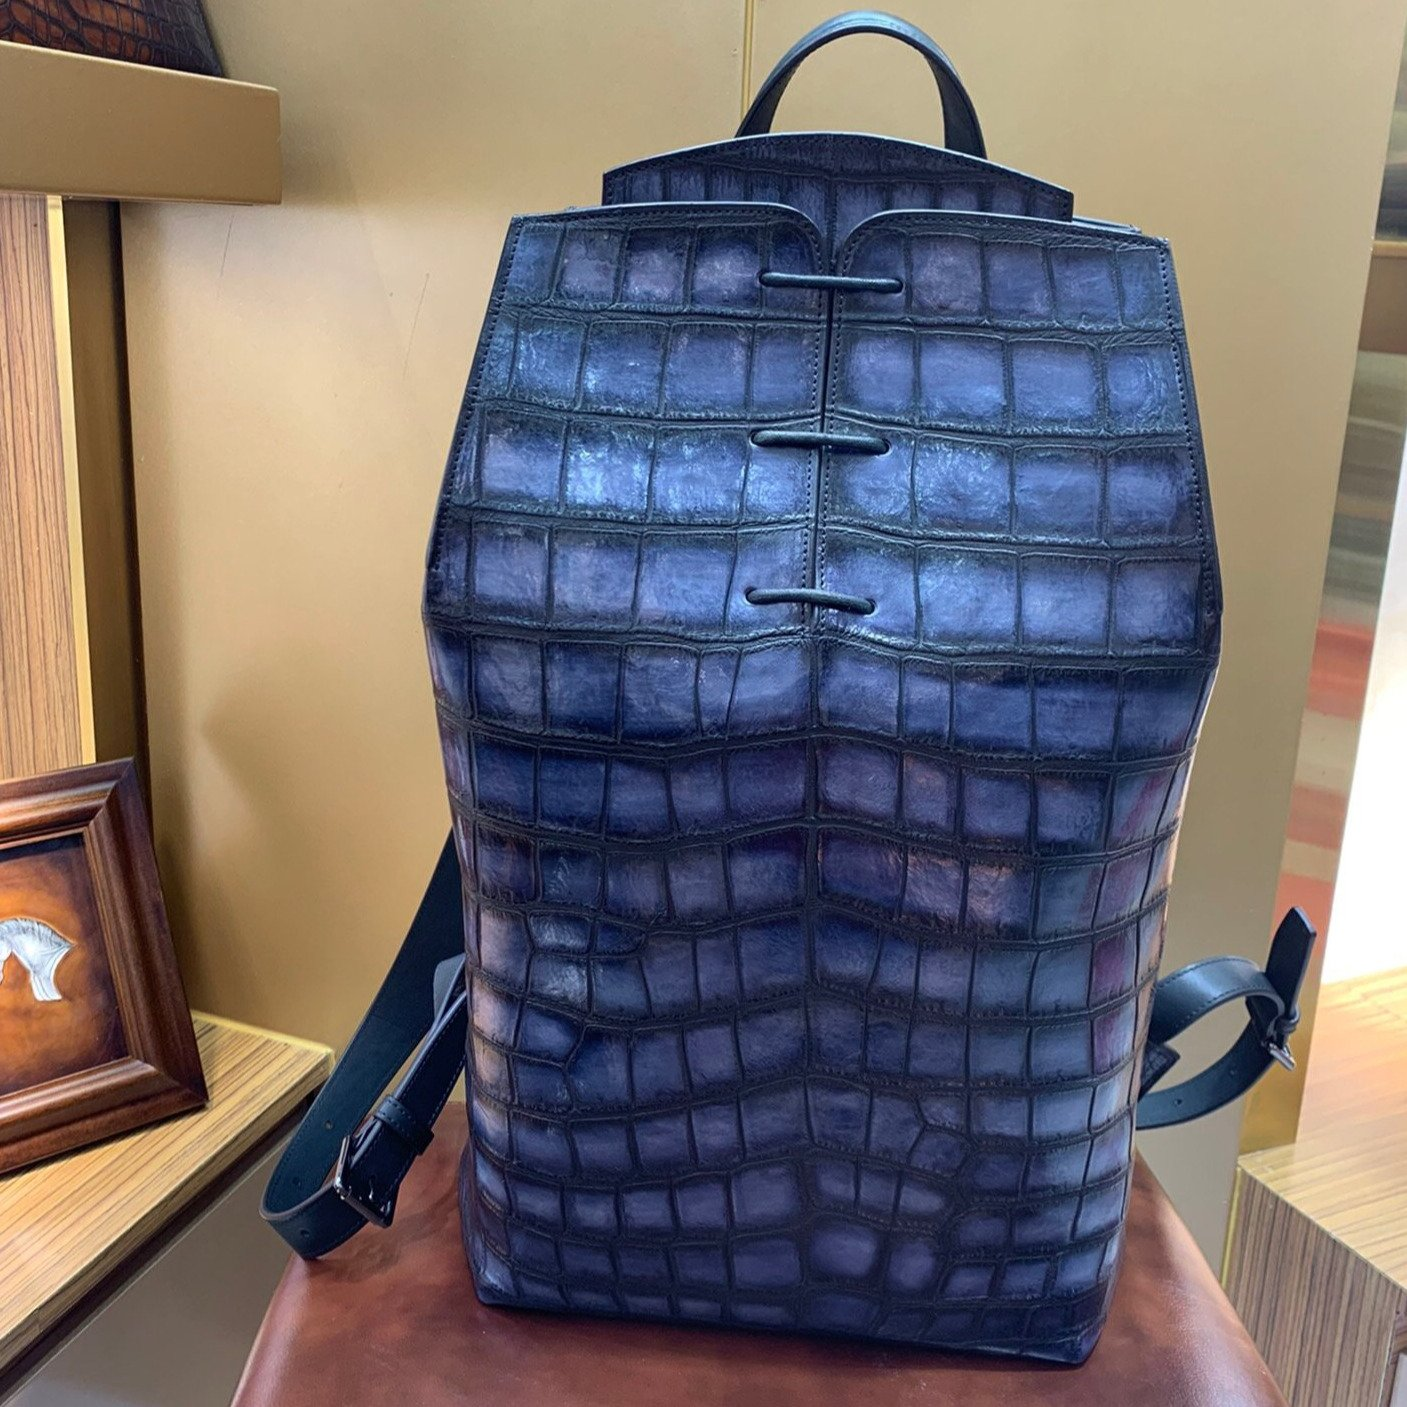 Handmade Men's Crocodile Genuine Leather Medium Backpack - Briefcase Deals